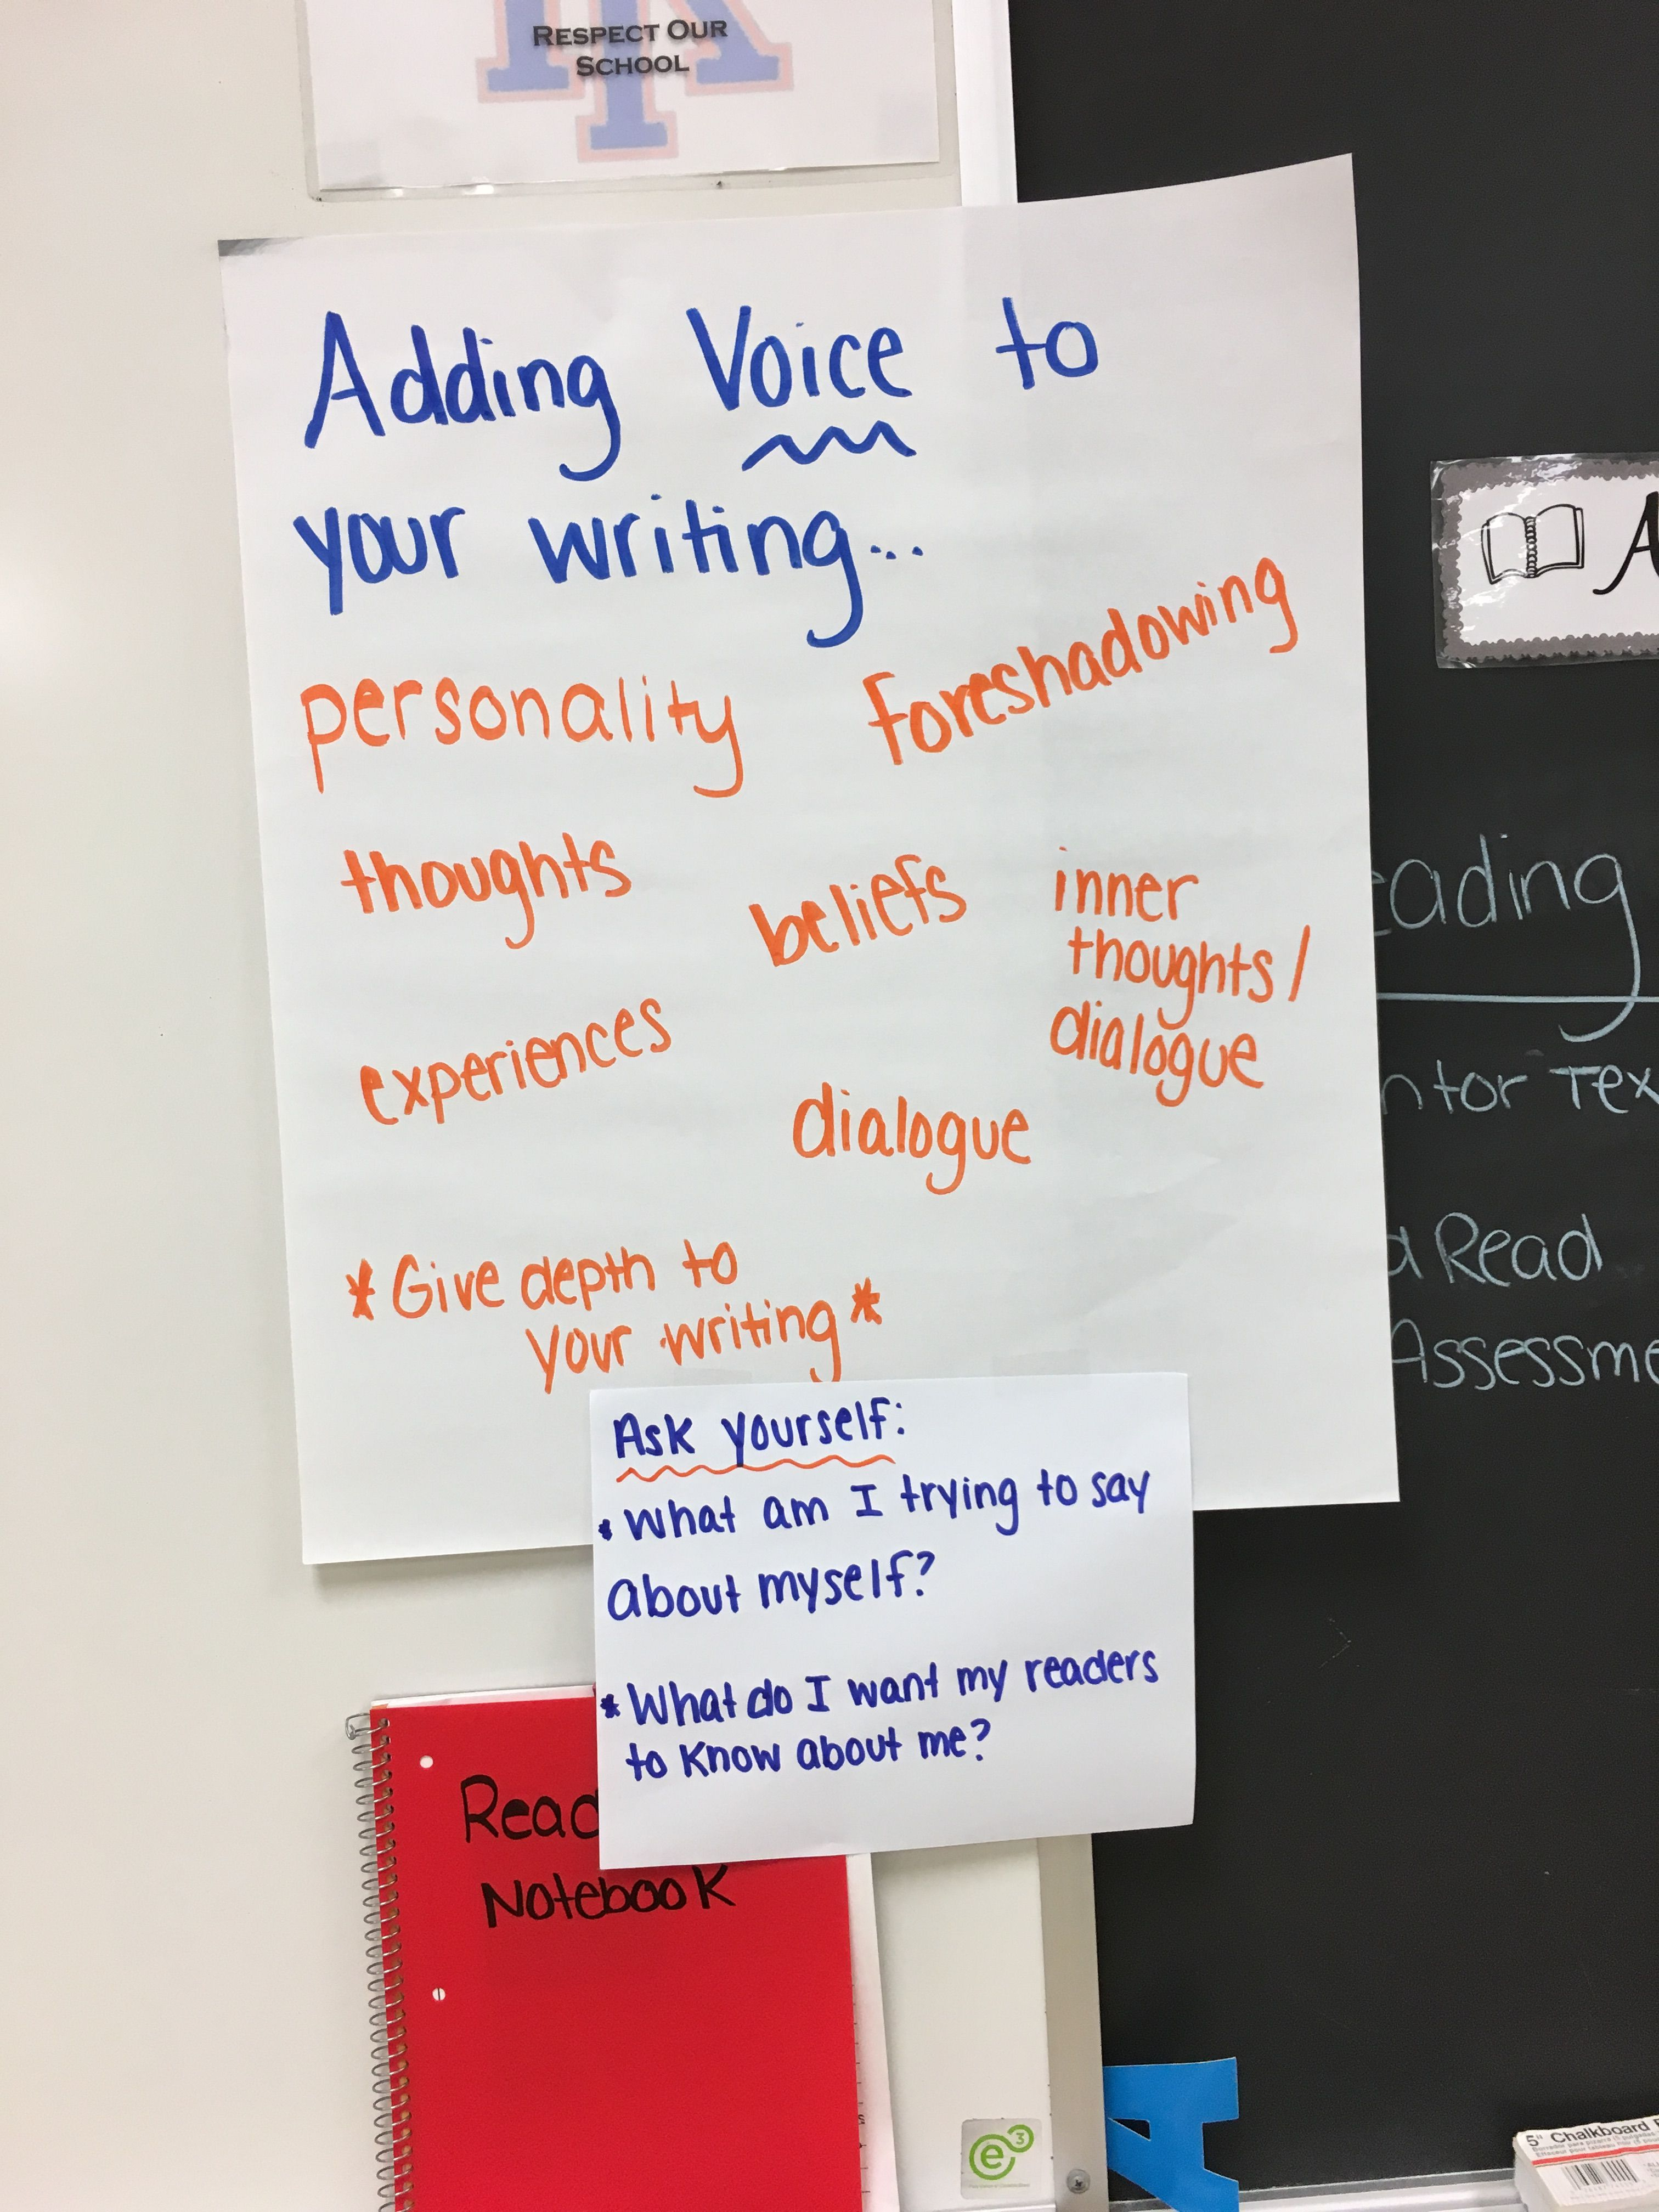 Add Voice To Your Writing